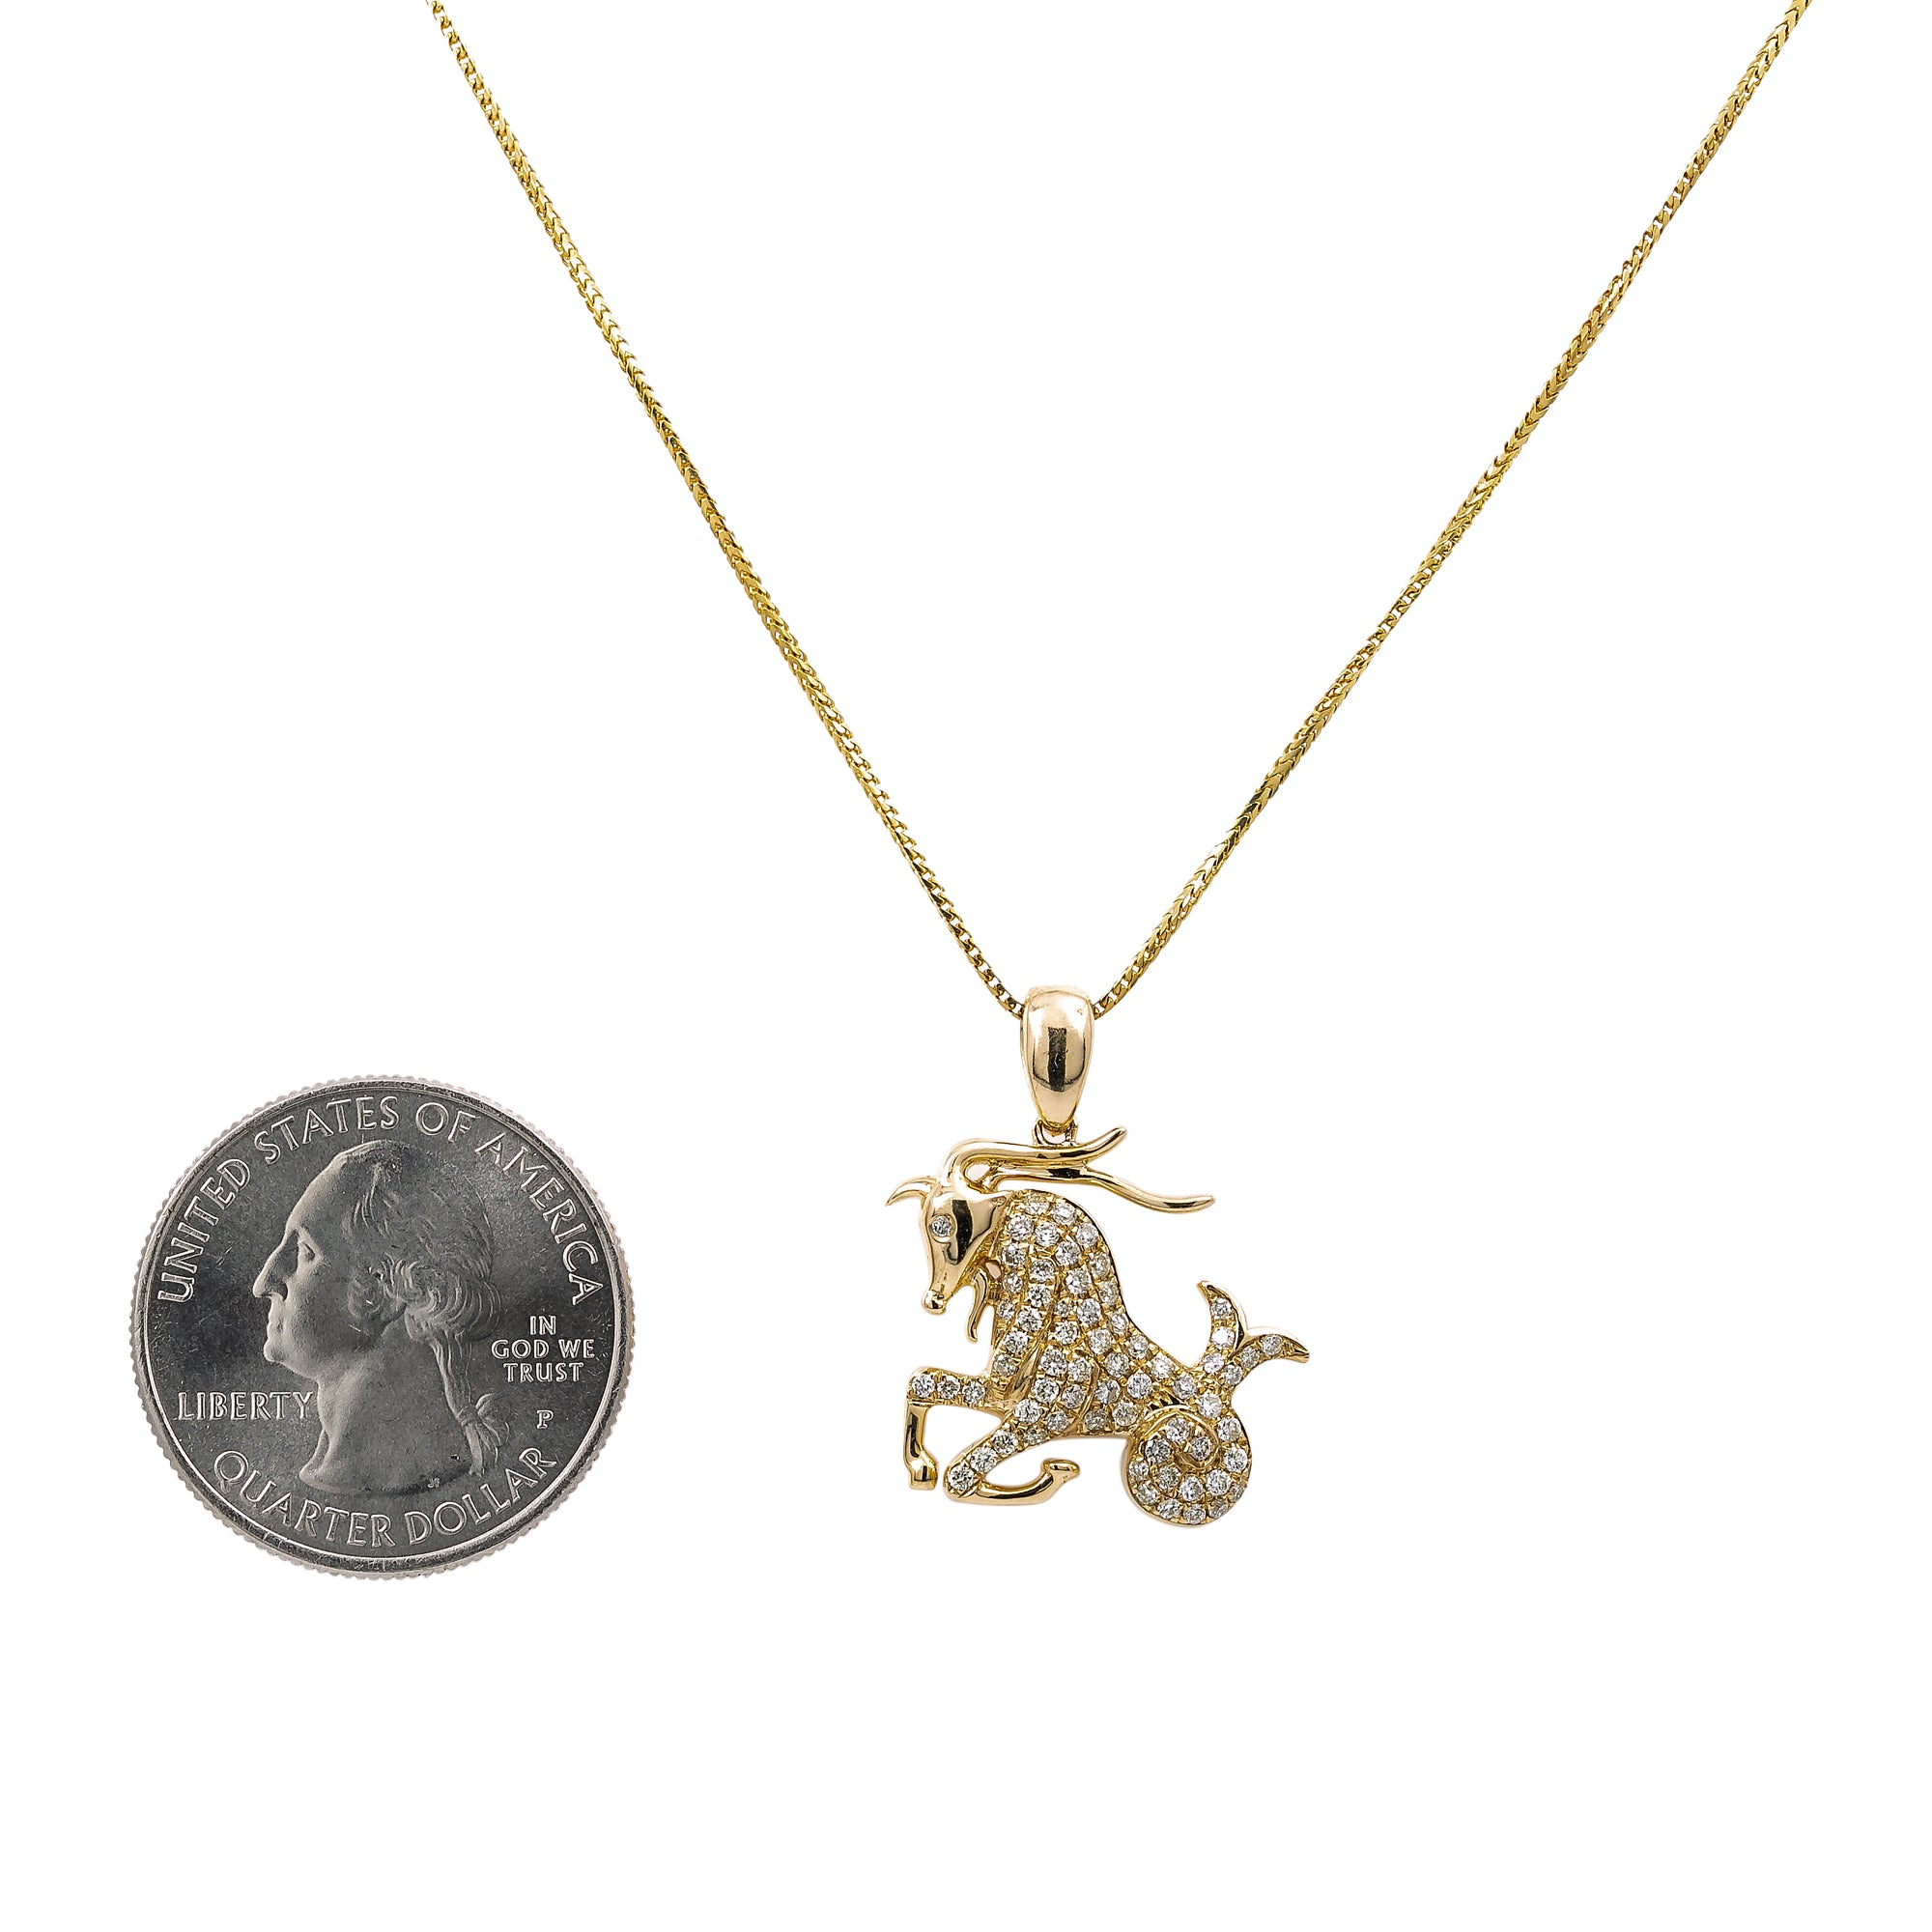 Unisex 14K Yellow Gold Zodiac Sign Capricorn Pendant With 0.48 CT Diamonds